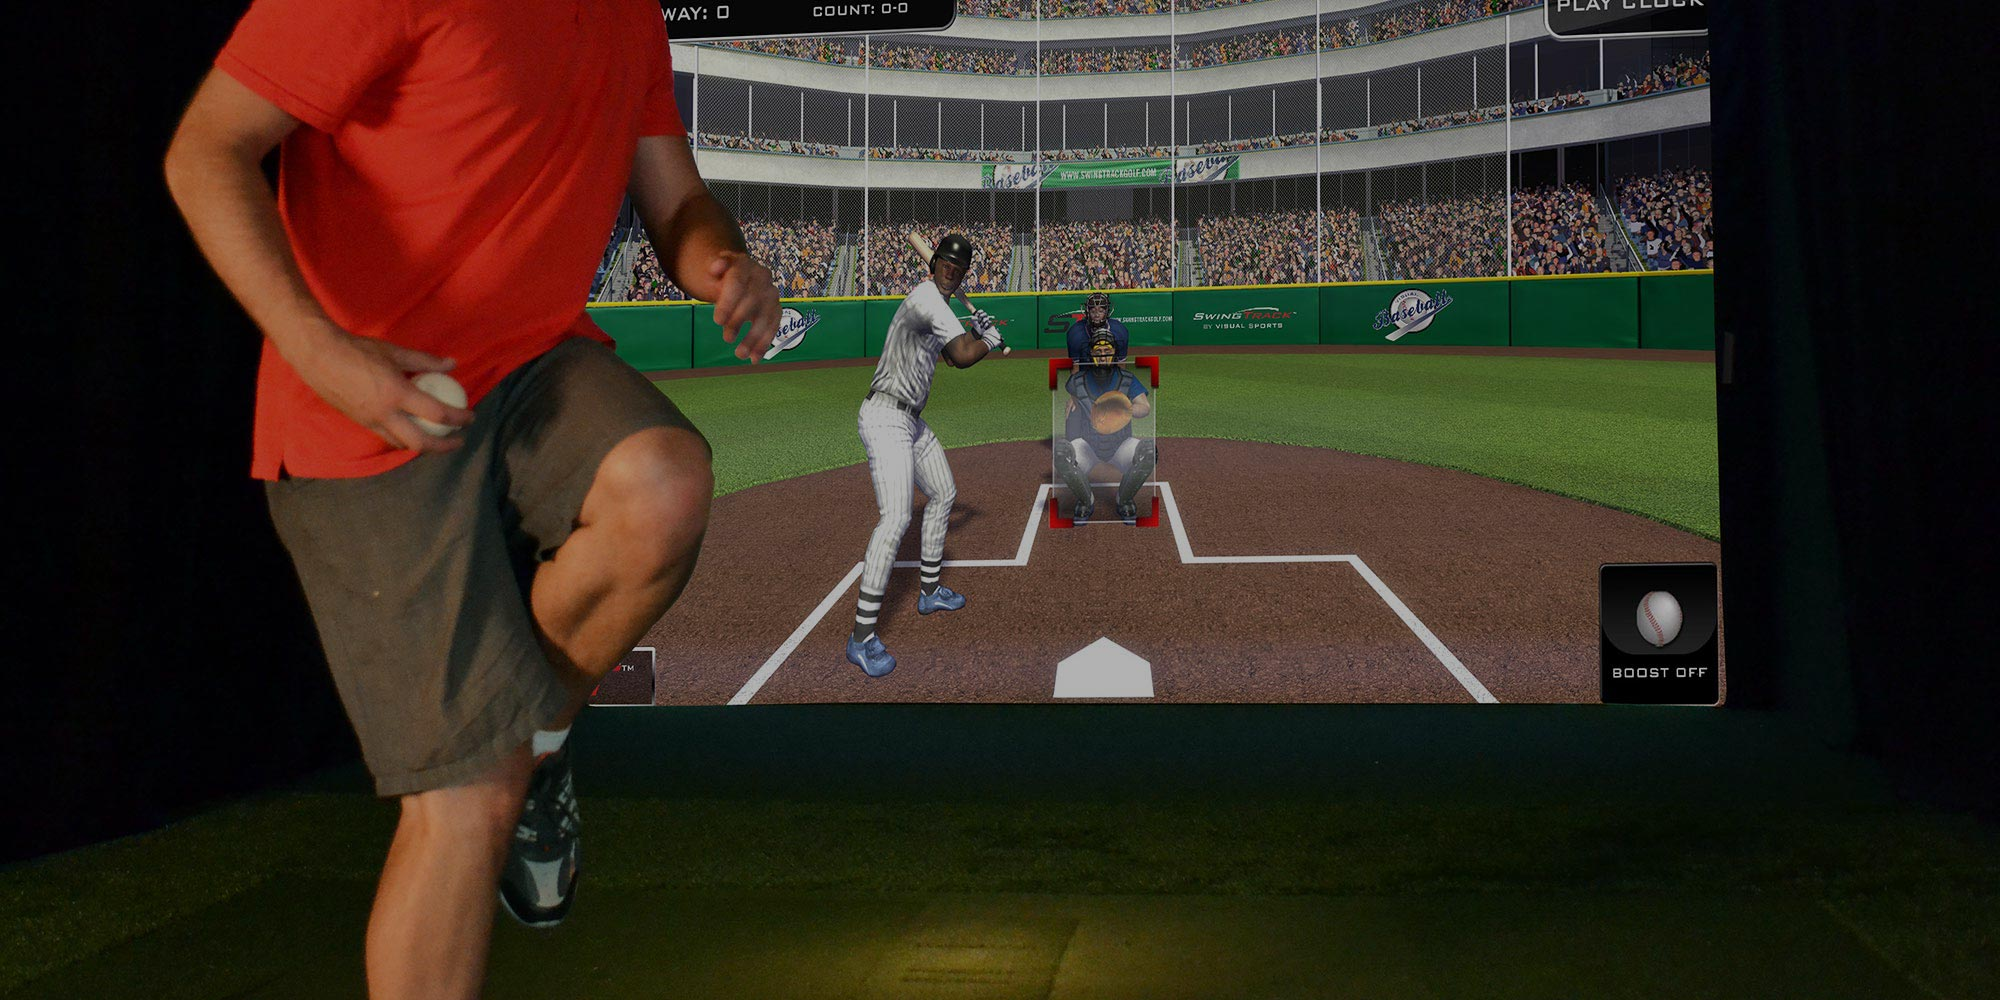 Man throwing pitch using baseball simulator..